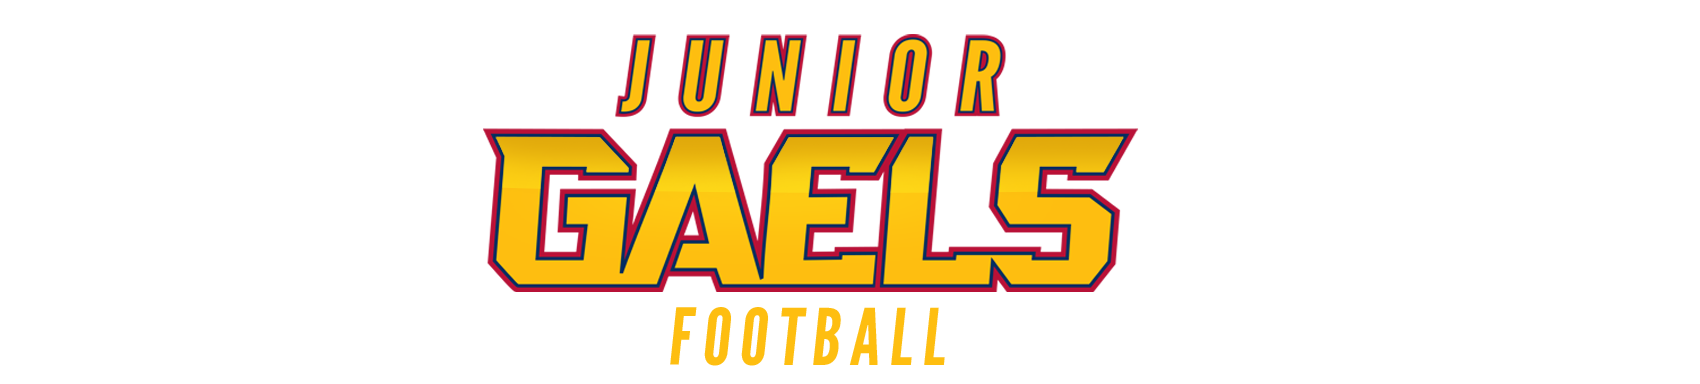 Jr. Gaels Football